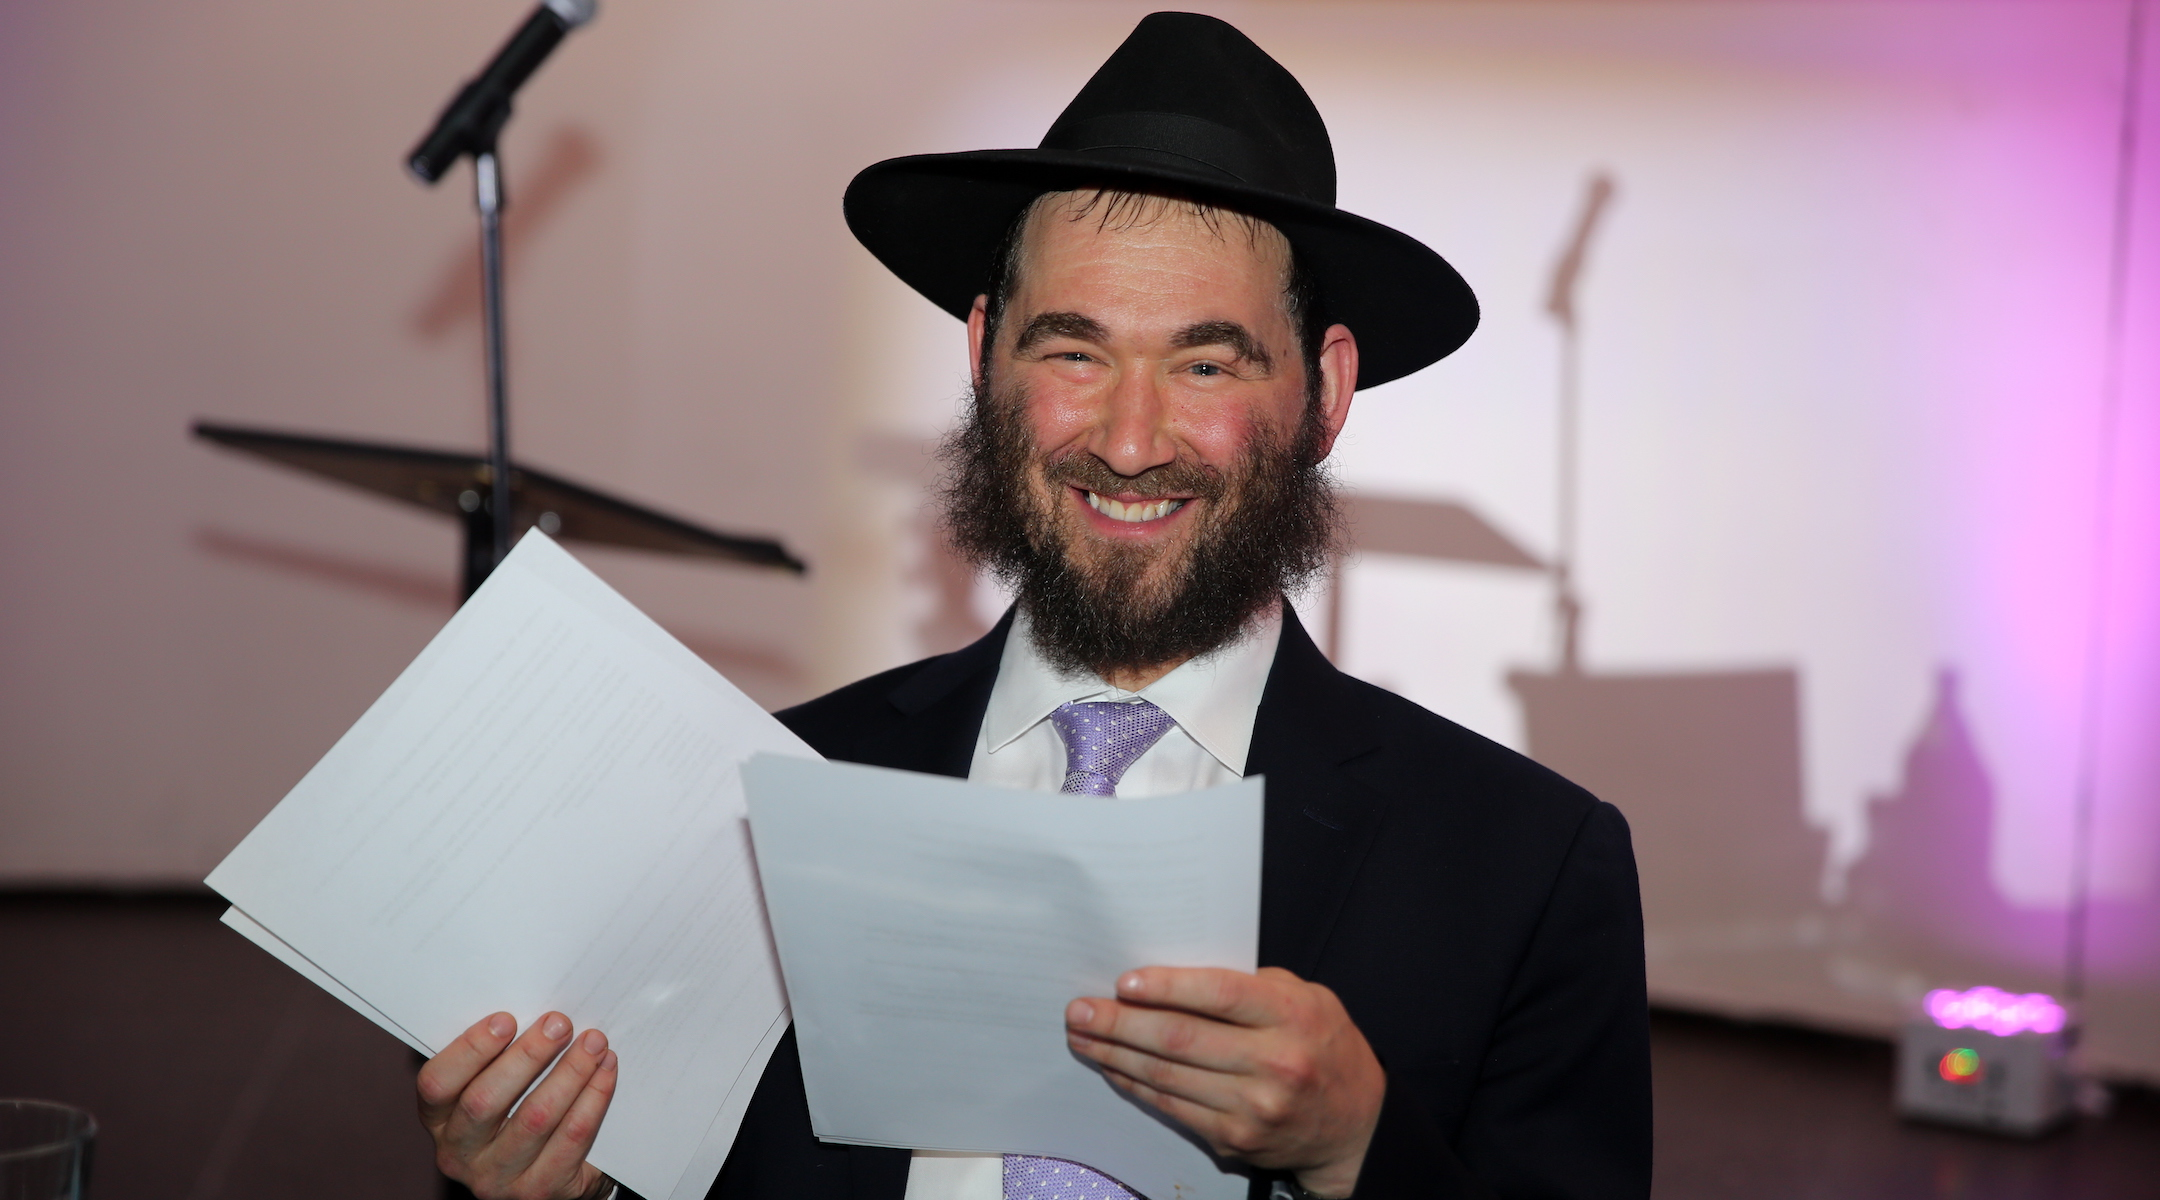 Yehuda 'Yudi' Dukes, Hasidic father of 6, is dead after 10-month battle with COVID